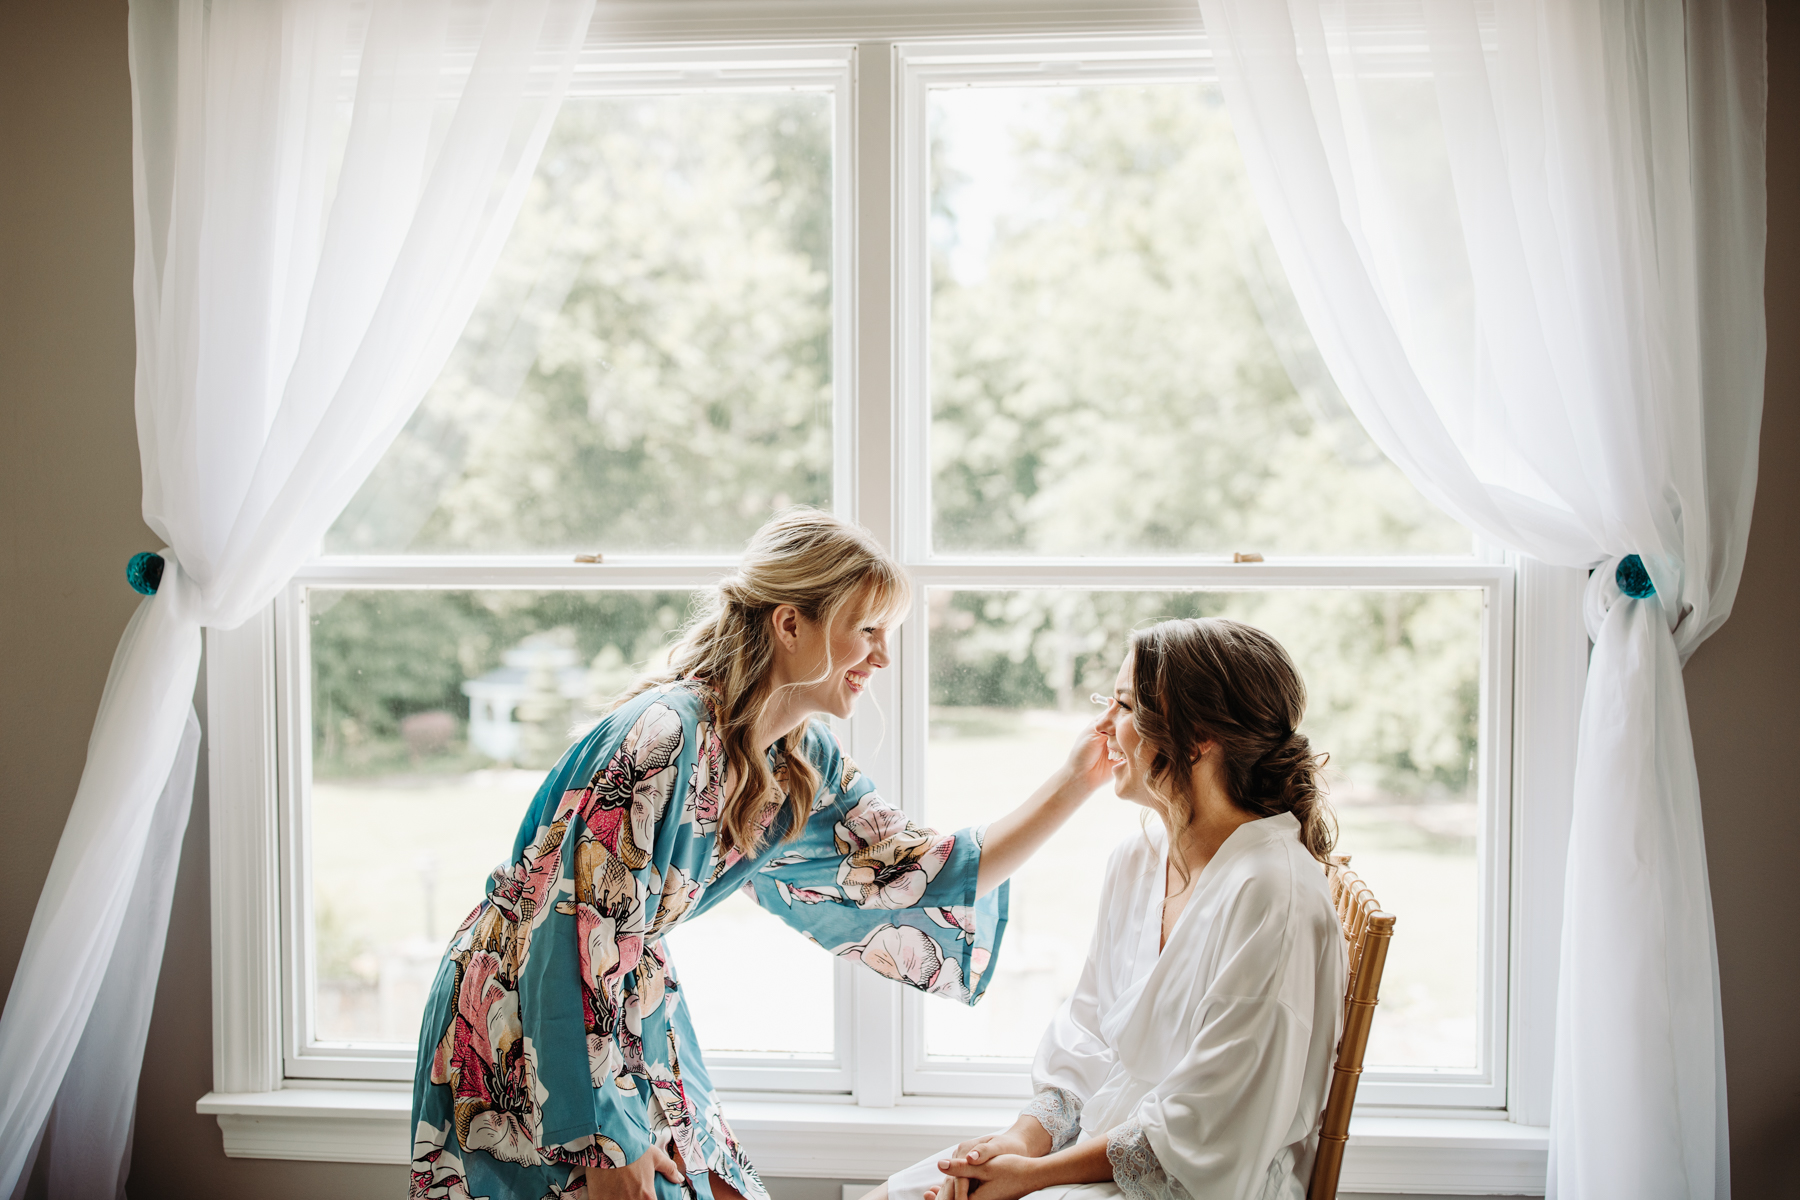 bridesmaid helping bride fix her makeup before a Sunny summer wedding at Dara's Garden in Knoxville, Tennessee